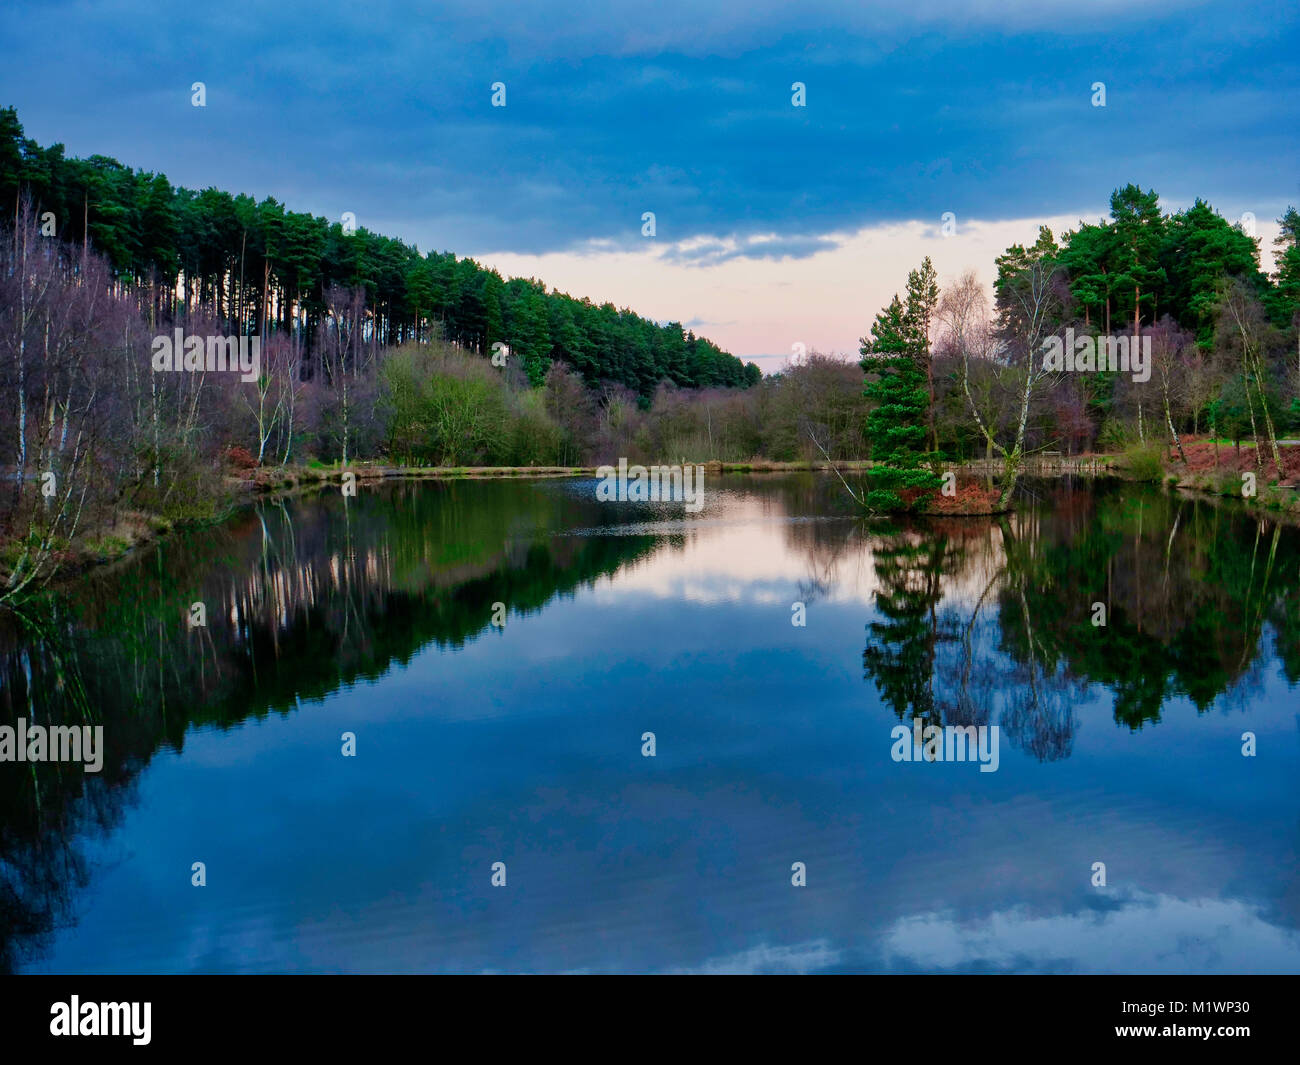 UK Weather; Loverly afternoon at the Fairoak Valley Pools on the Fairoak Trail, Cannock Chase, Staffordshire recommended - Stock Image